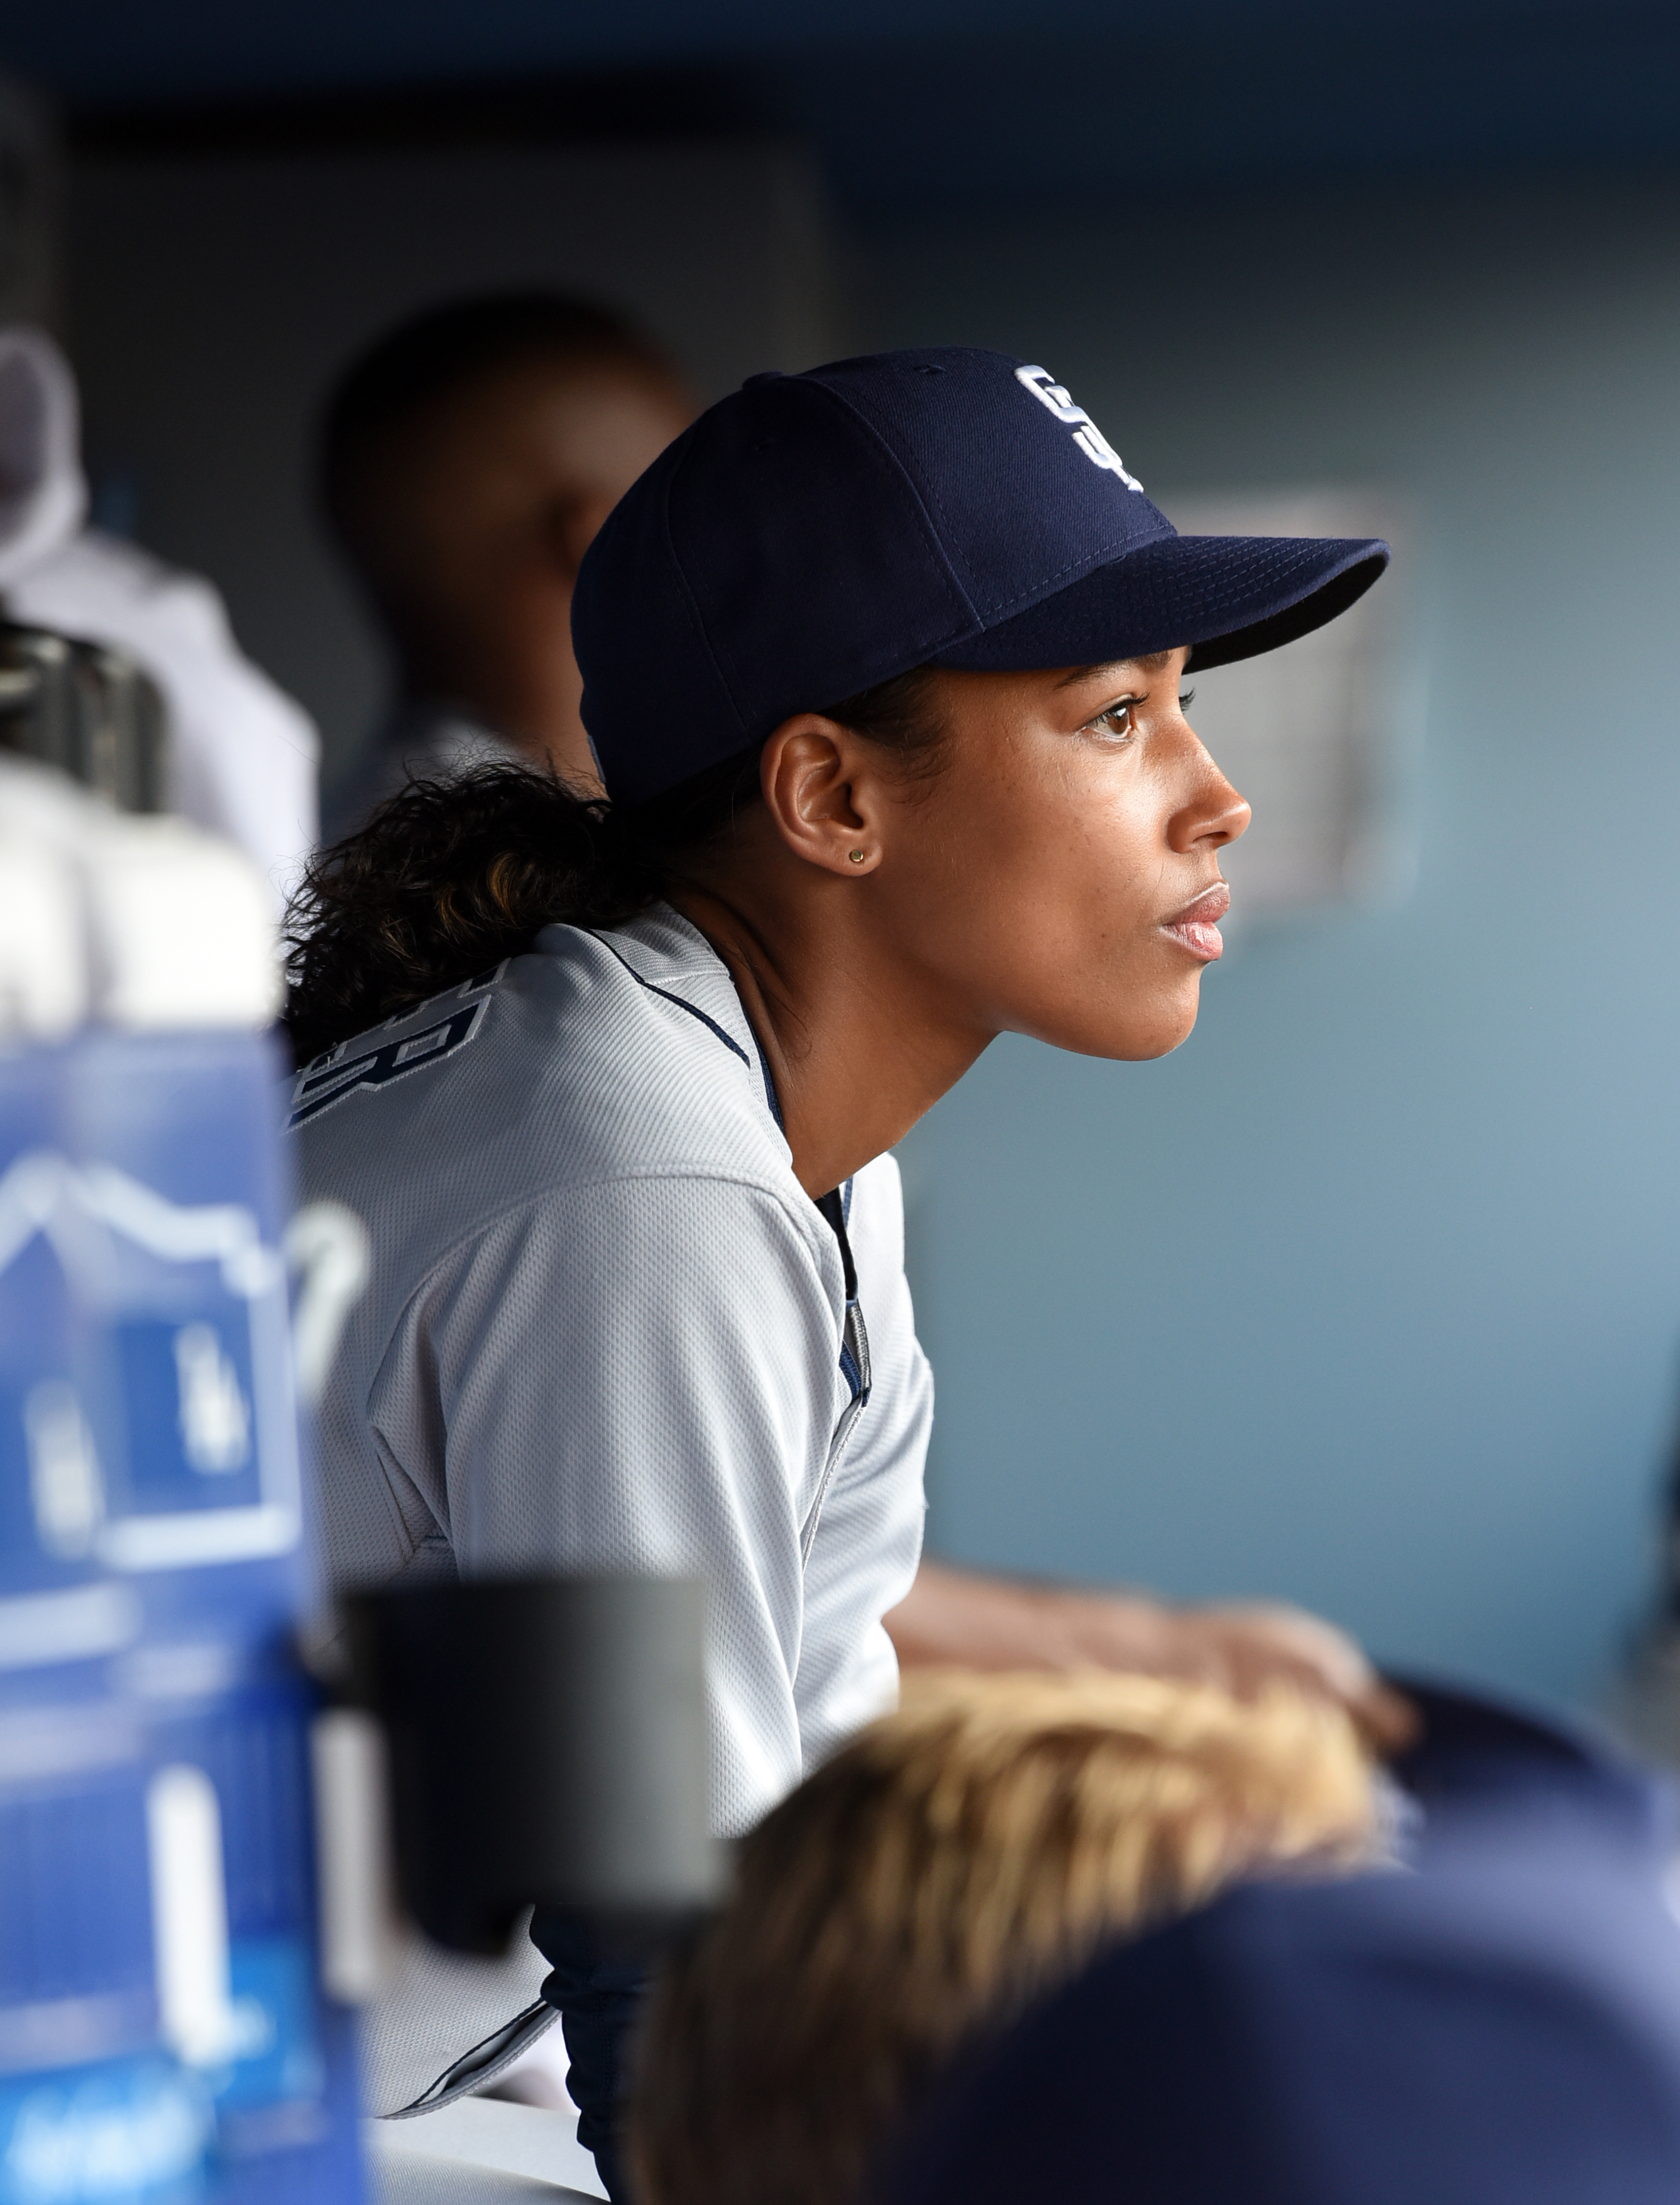 """In this photo provided by FOX, actress Kylie Bunbury is shown in the """"The Interim"""" episode of """"Pitch"""" which is airing Thursday, Sept. 29, 2016. Remarkably, the lead actress and lead writer of """"Pitch"""" have been asked by strangers whether the Fox TV series"""